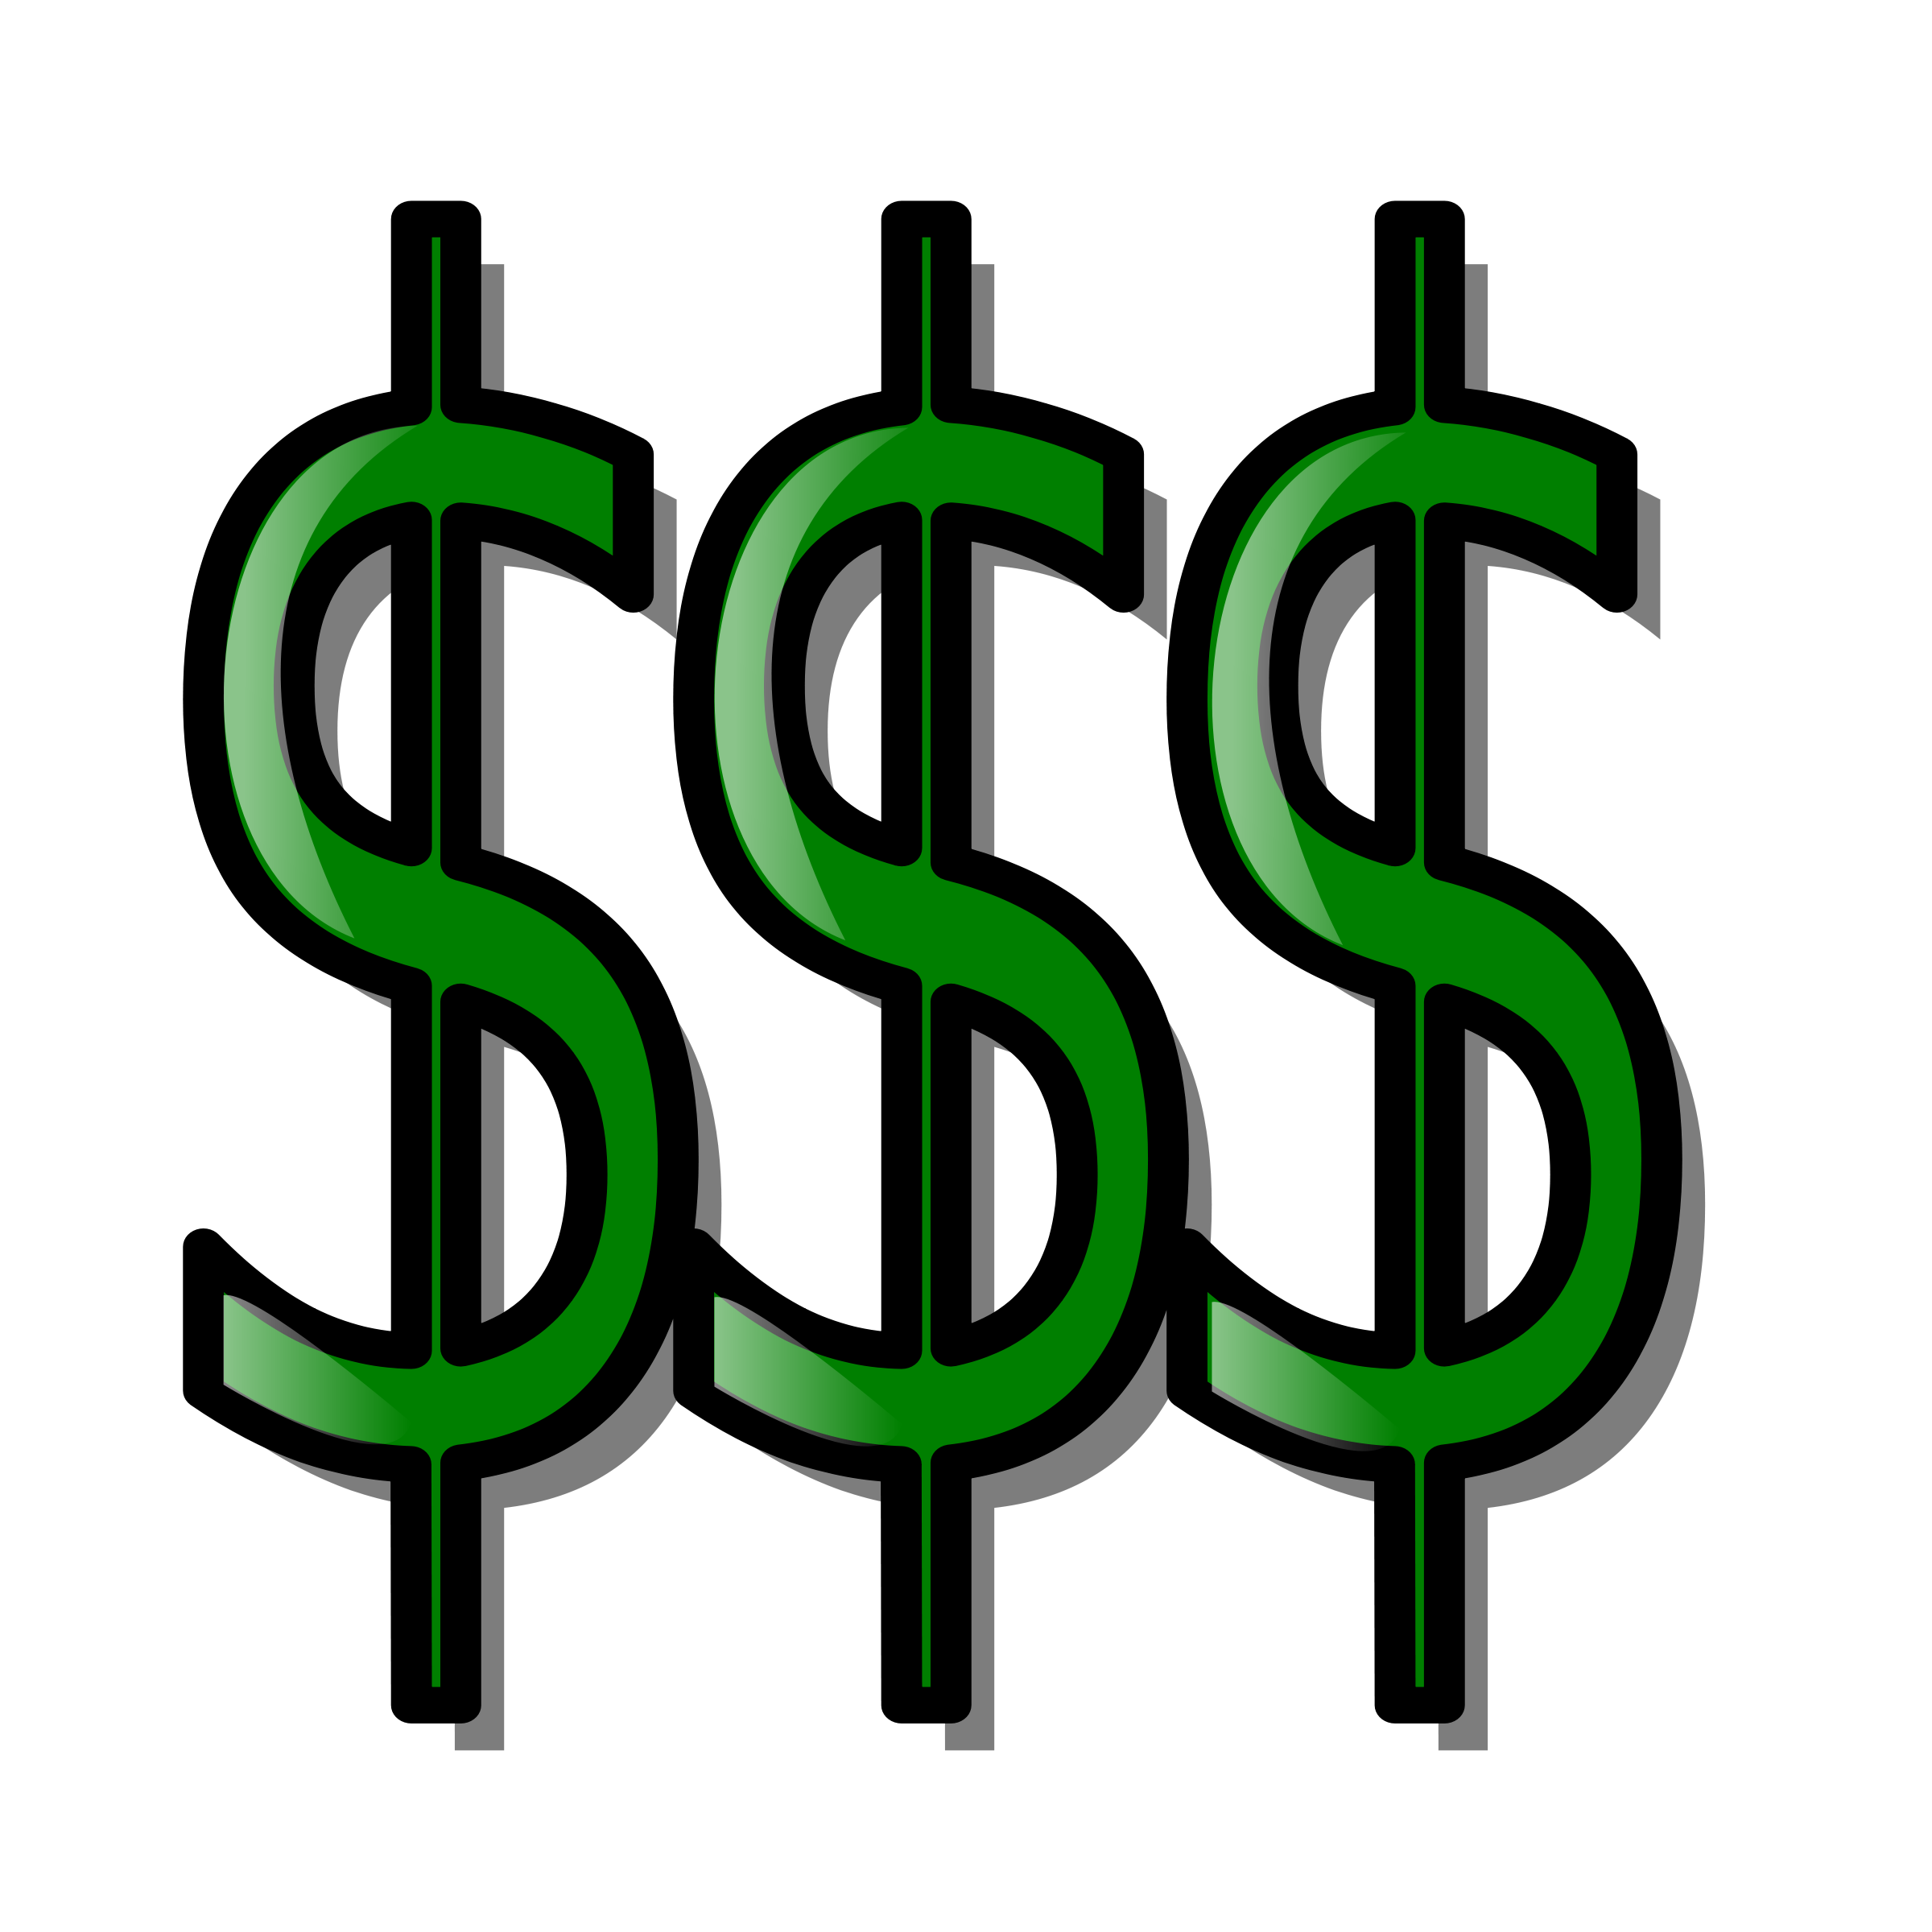 Stack clipart banner. Png royalty free